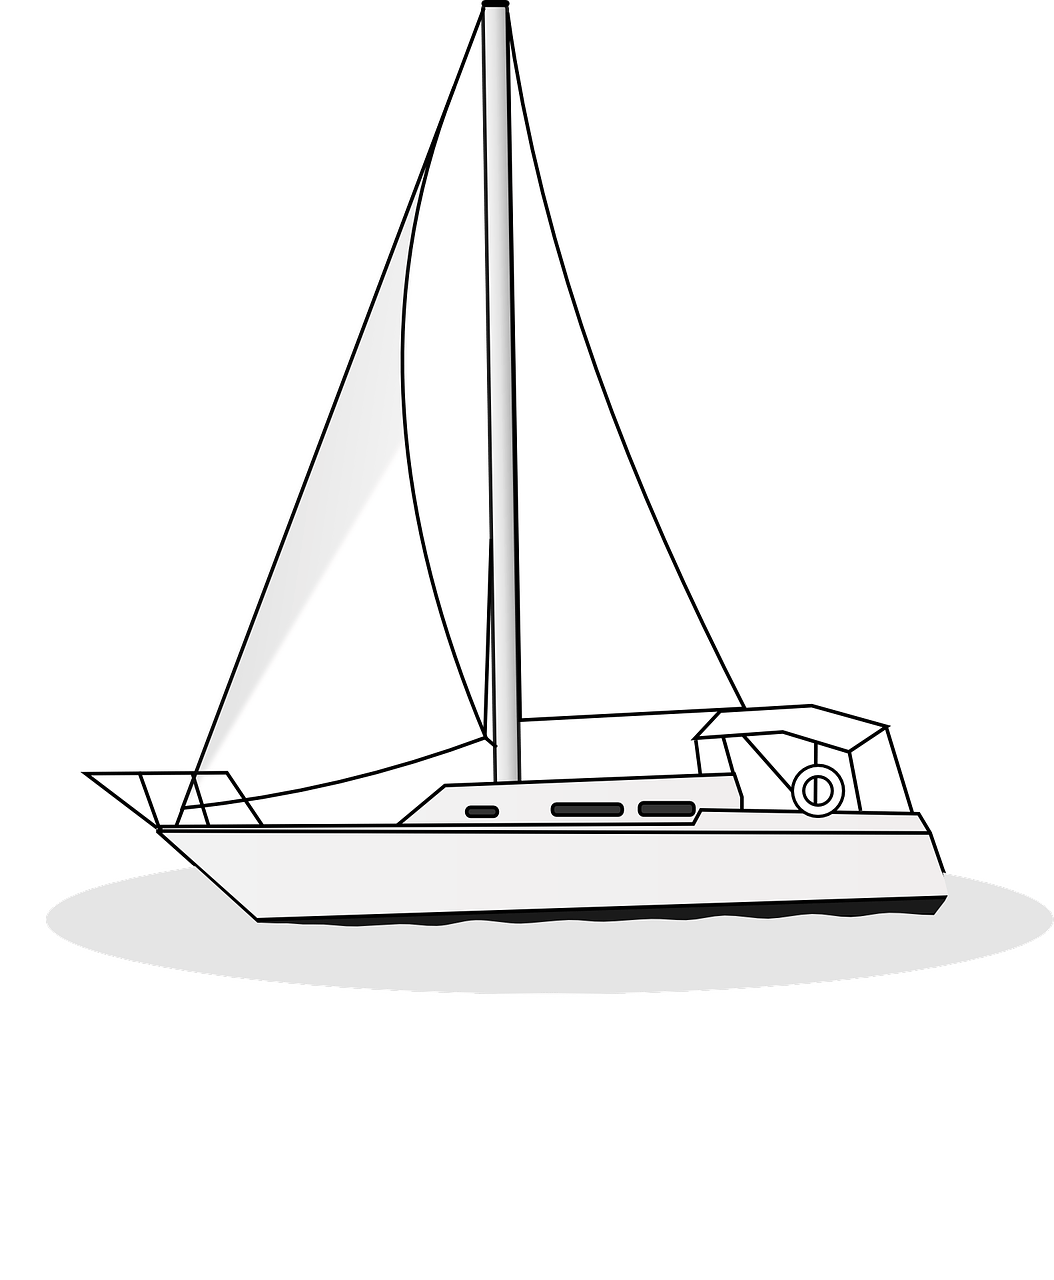 Boat Free Coloring Pages For Kids 12 Pics